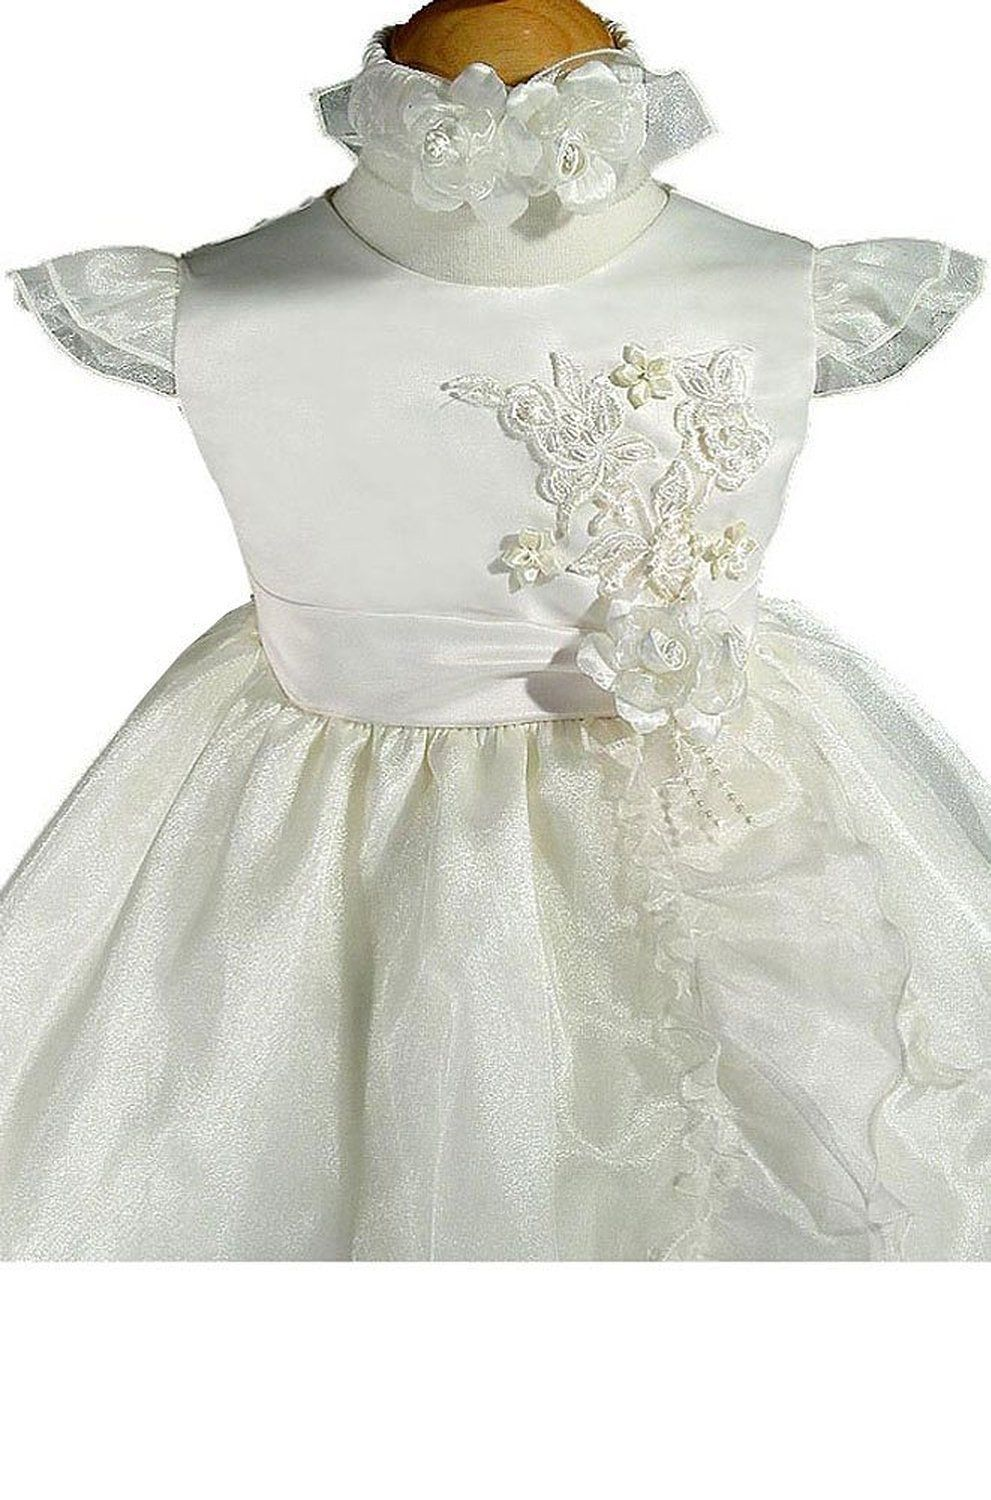 KID Collection Ivory Infant Flower Girl Wedding Dress Size Xl